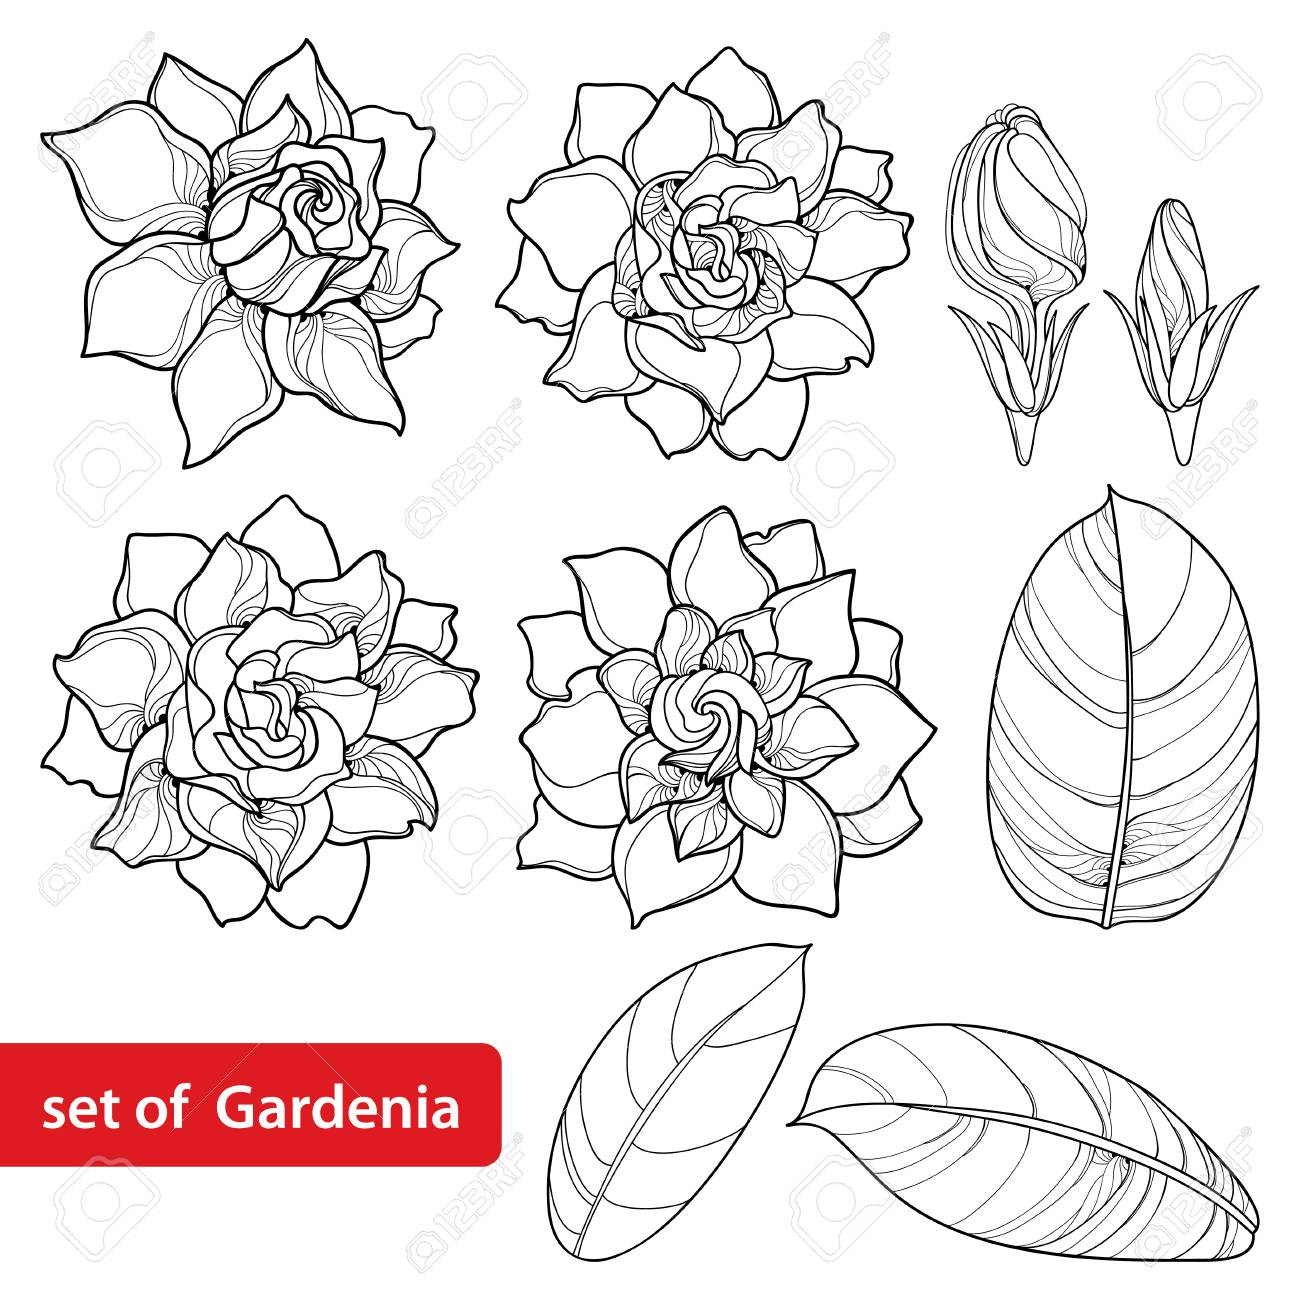 Set with outline Gardenia flower, ornate bud and leaves in black..